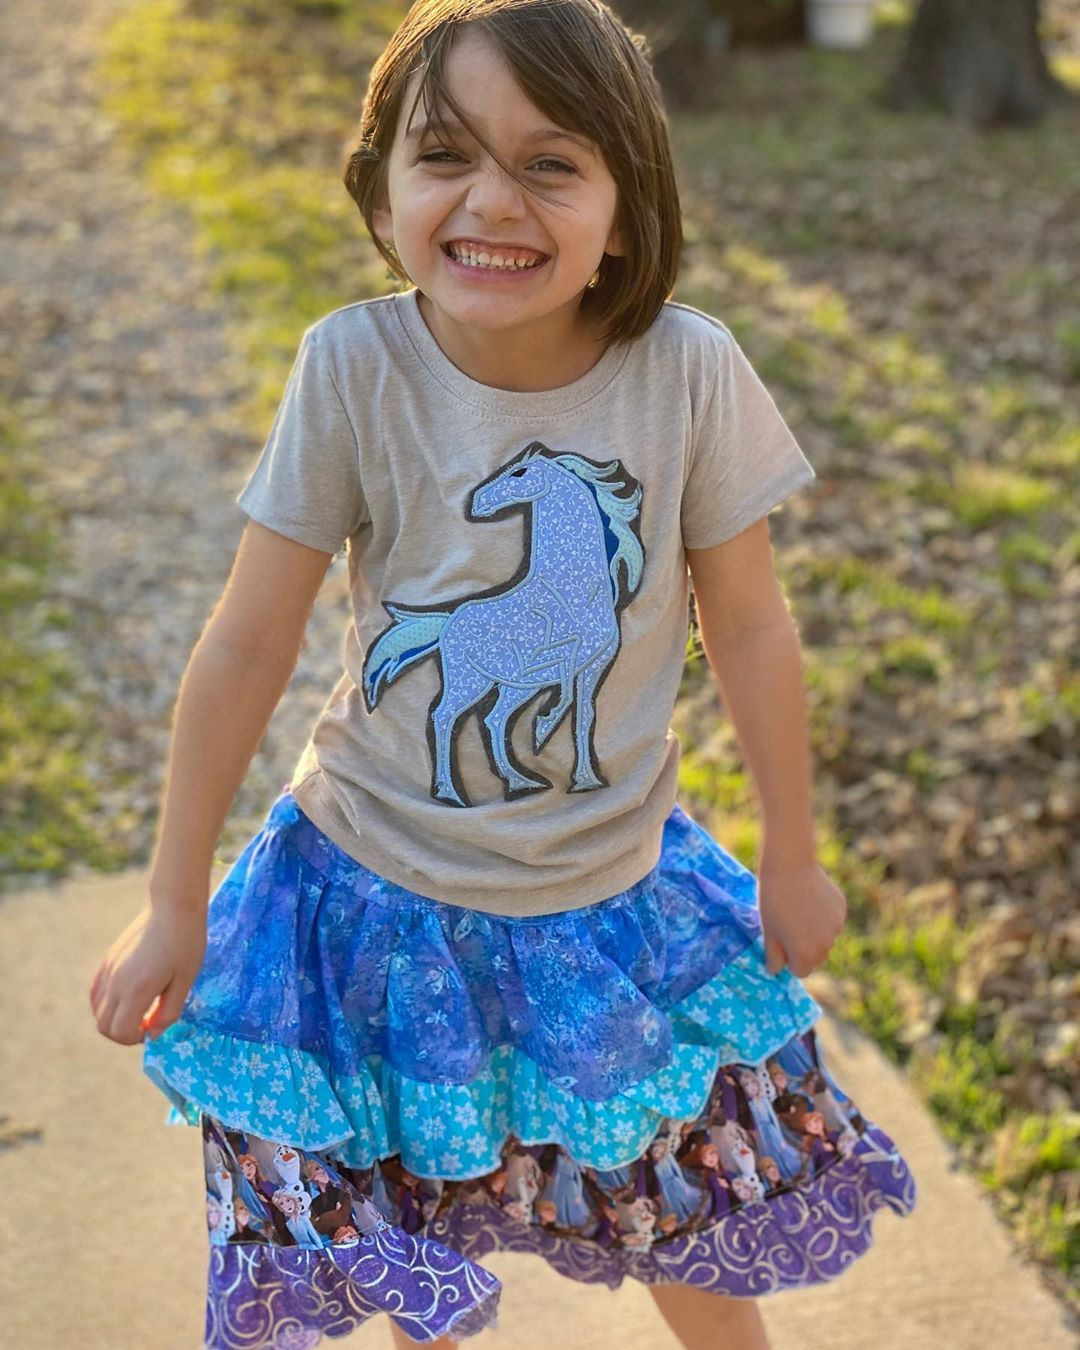 Emma sporting a fabulous Frozen II outfit courtesy of